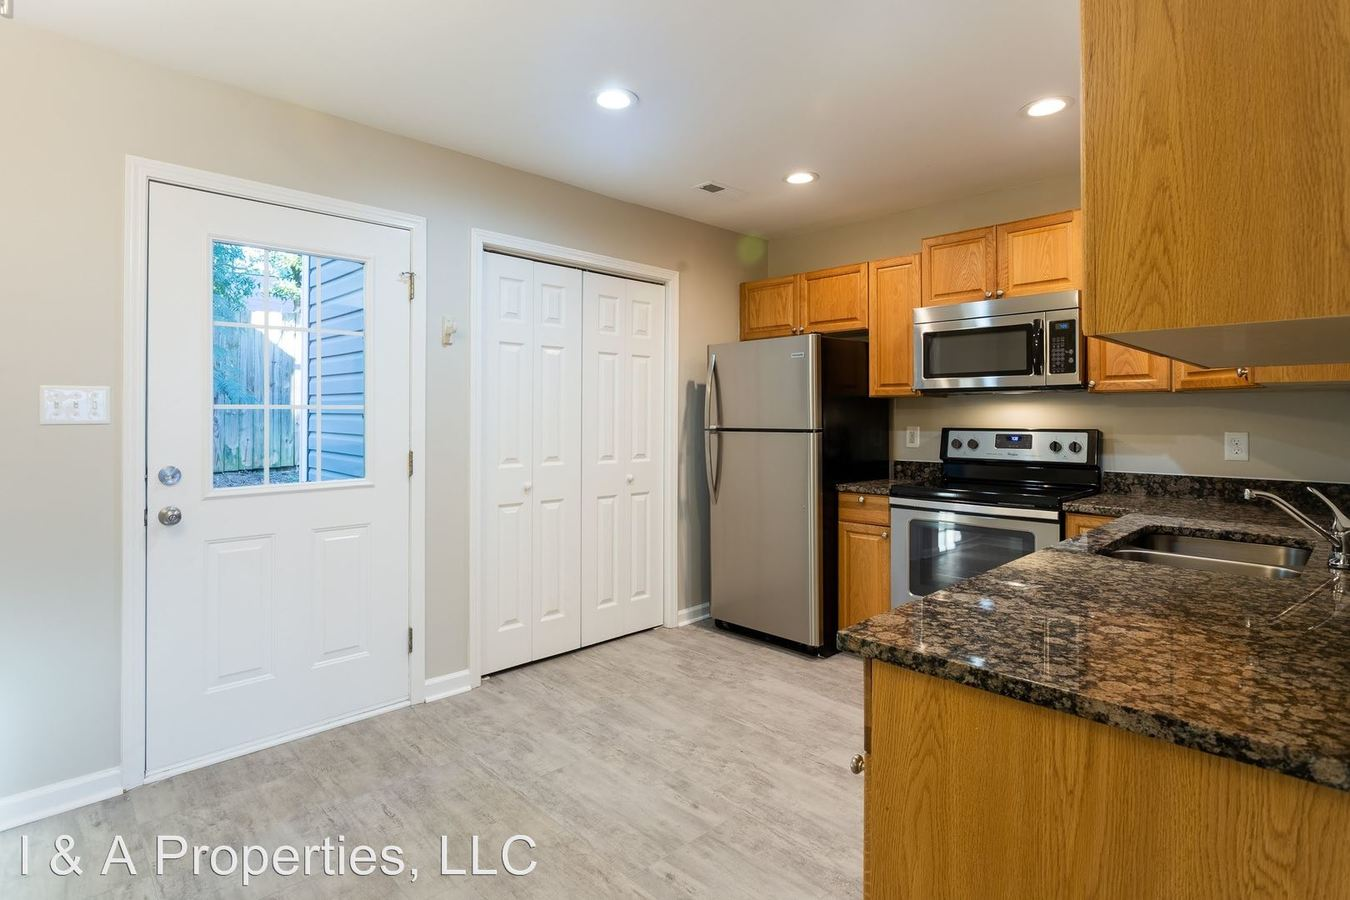 2 Bedrooms 1 Bathroom Apartment for rent at Halo Drive in Wellford, SC